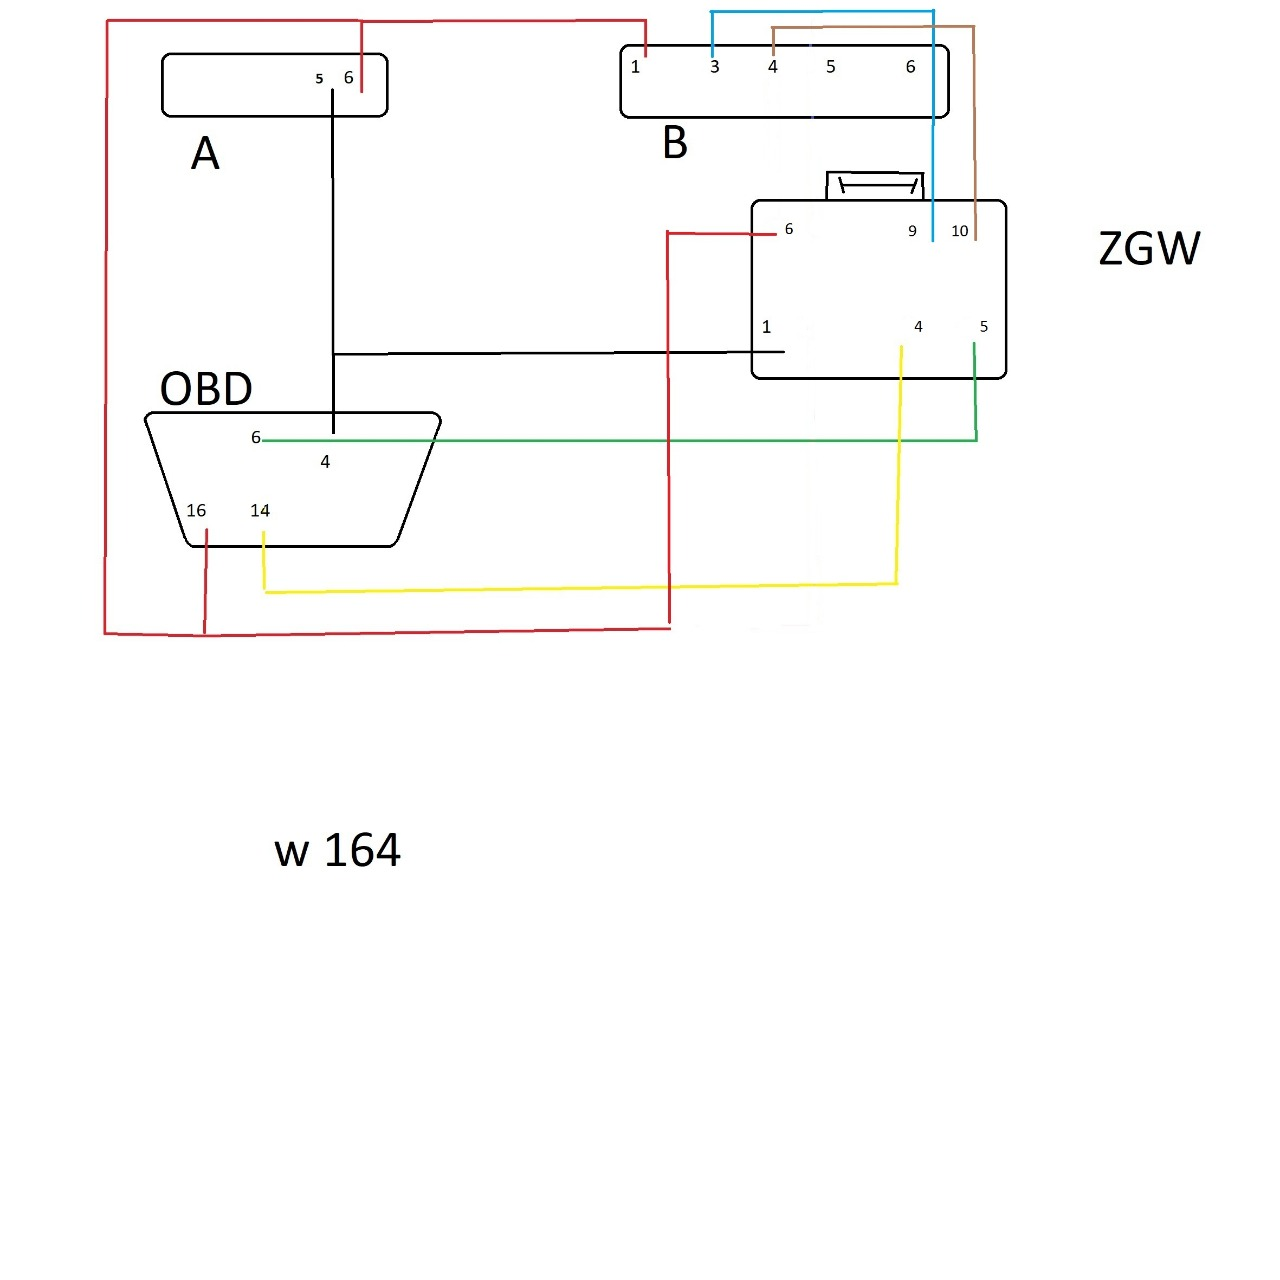 cgdi-mb-w164-wiring-diagram